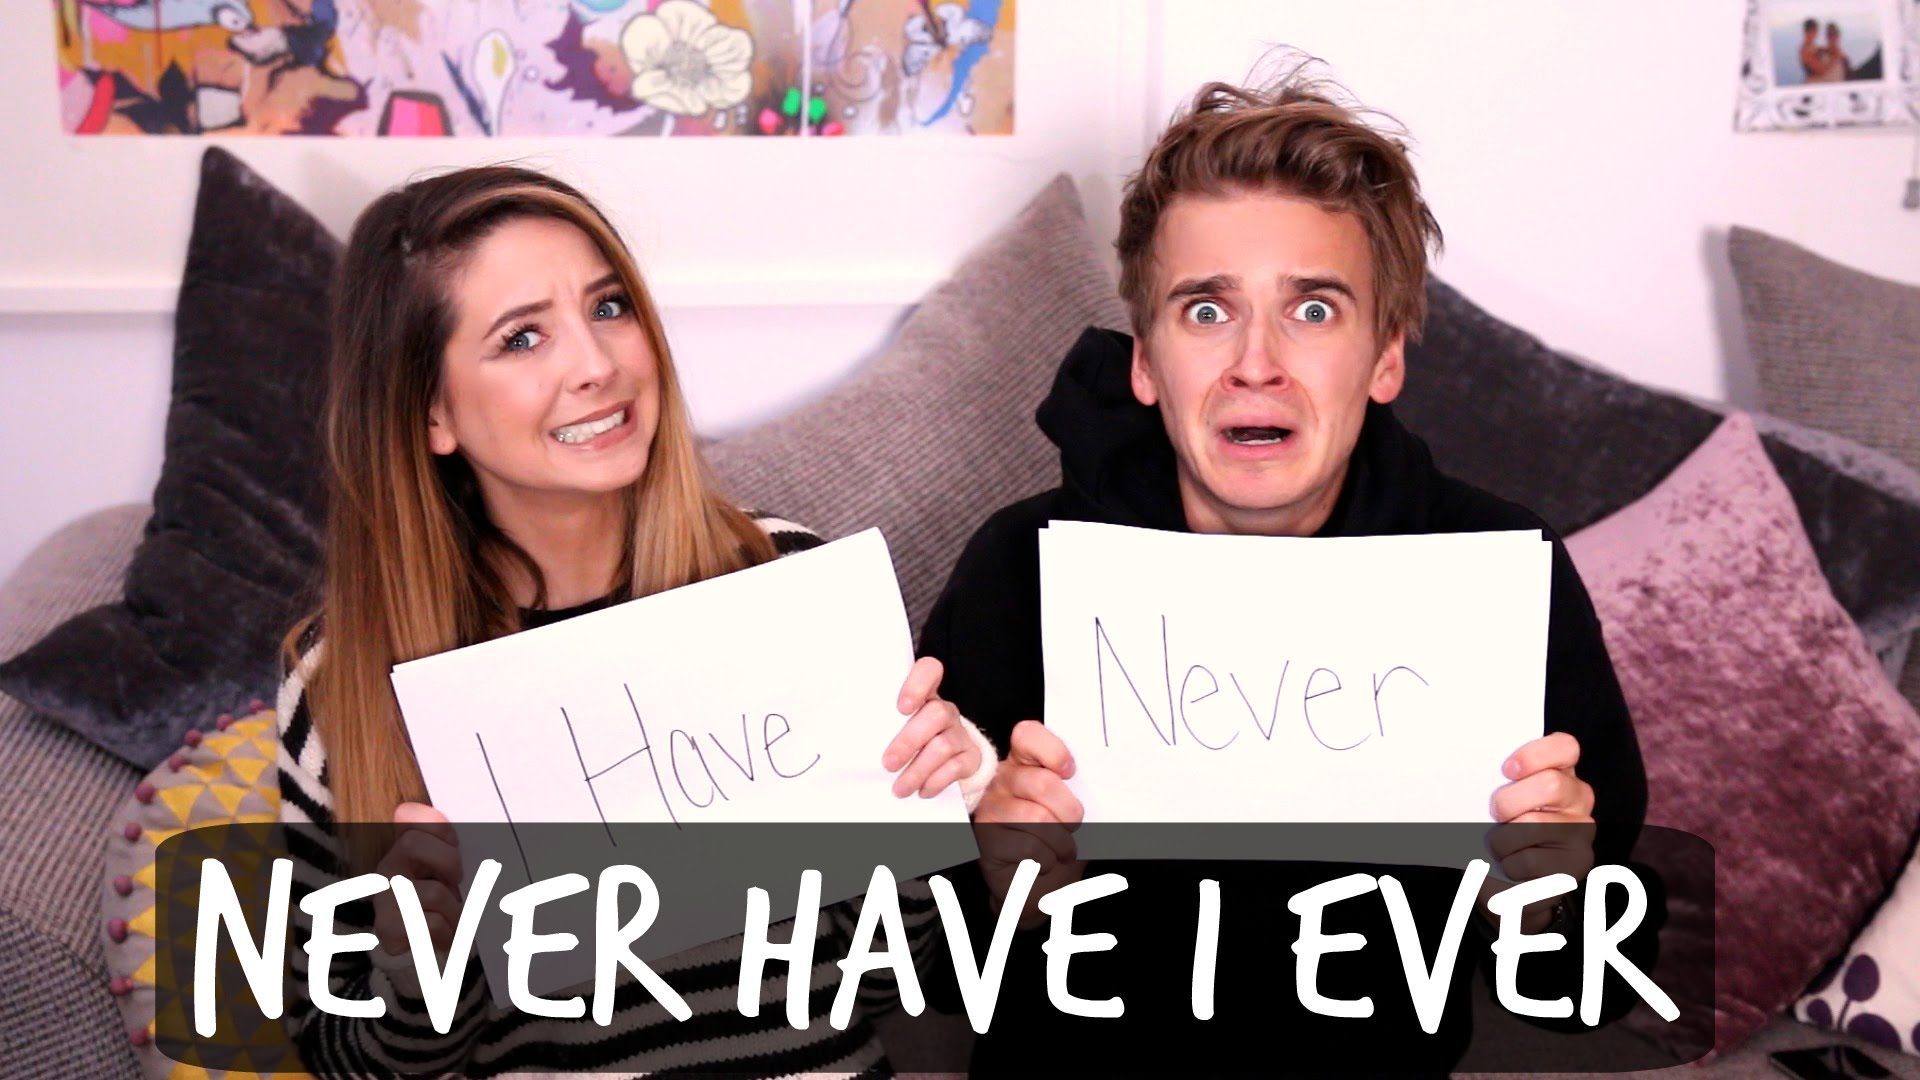 have never